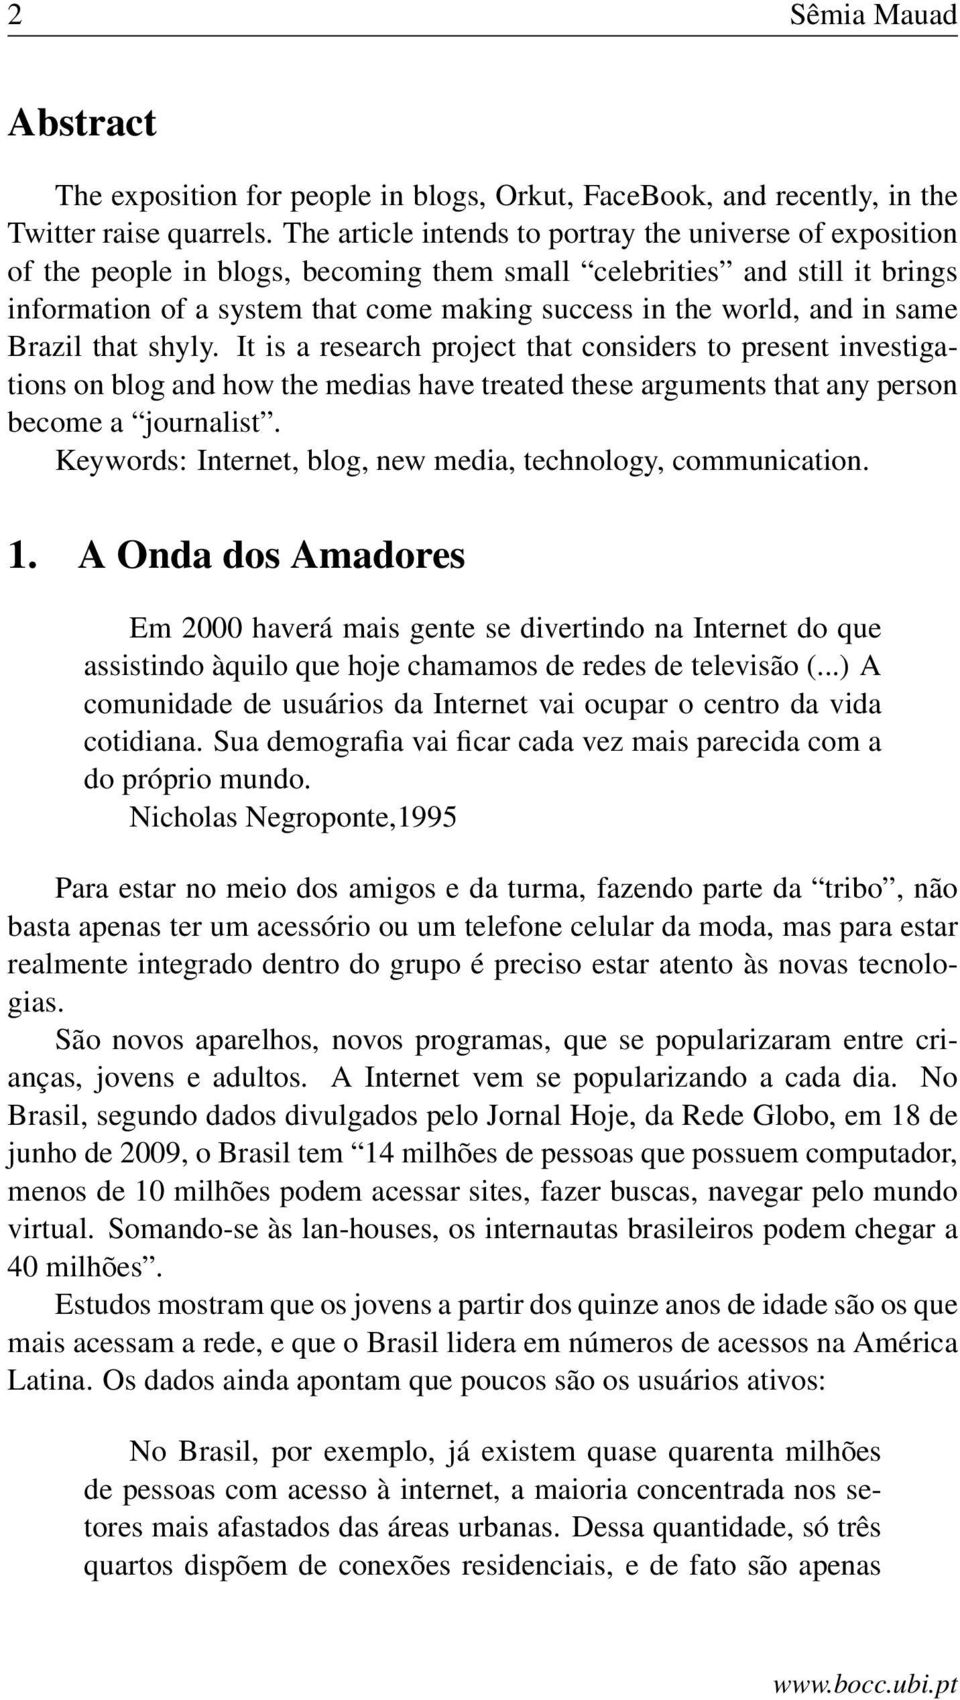 and in same Brazil that shyly. It is a research project that considers to present investigations on blog and how the medias have treated these arguments that any person become a journalist.